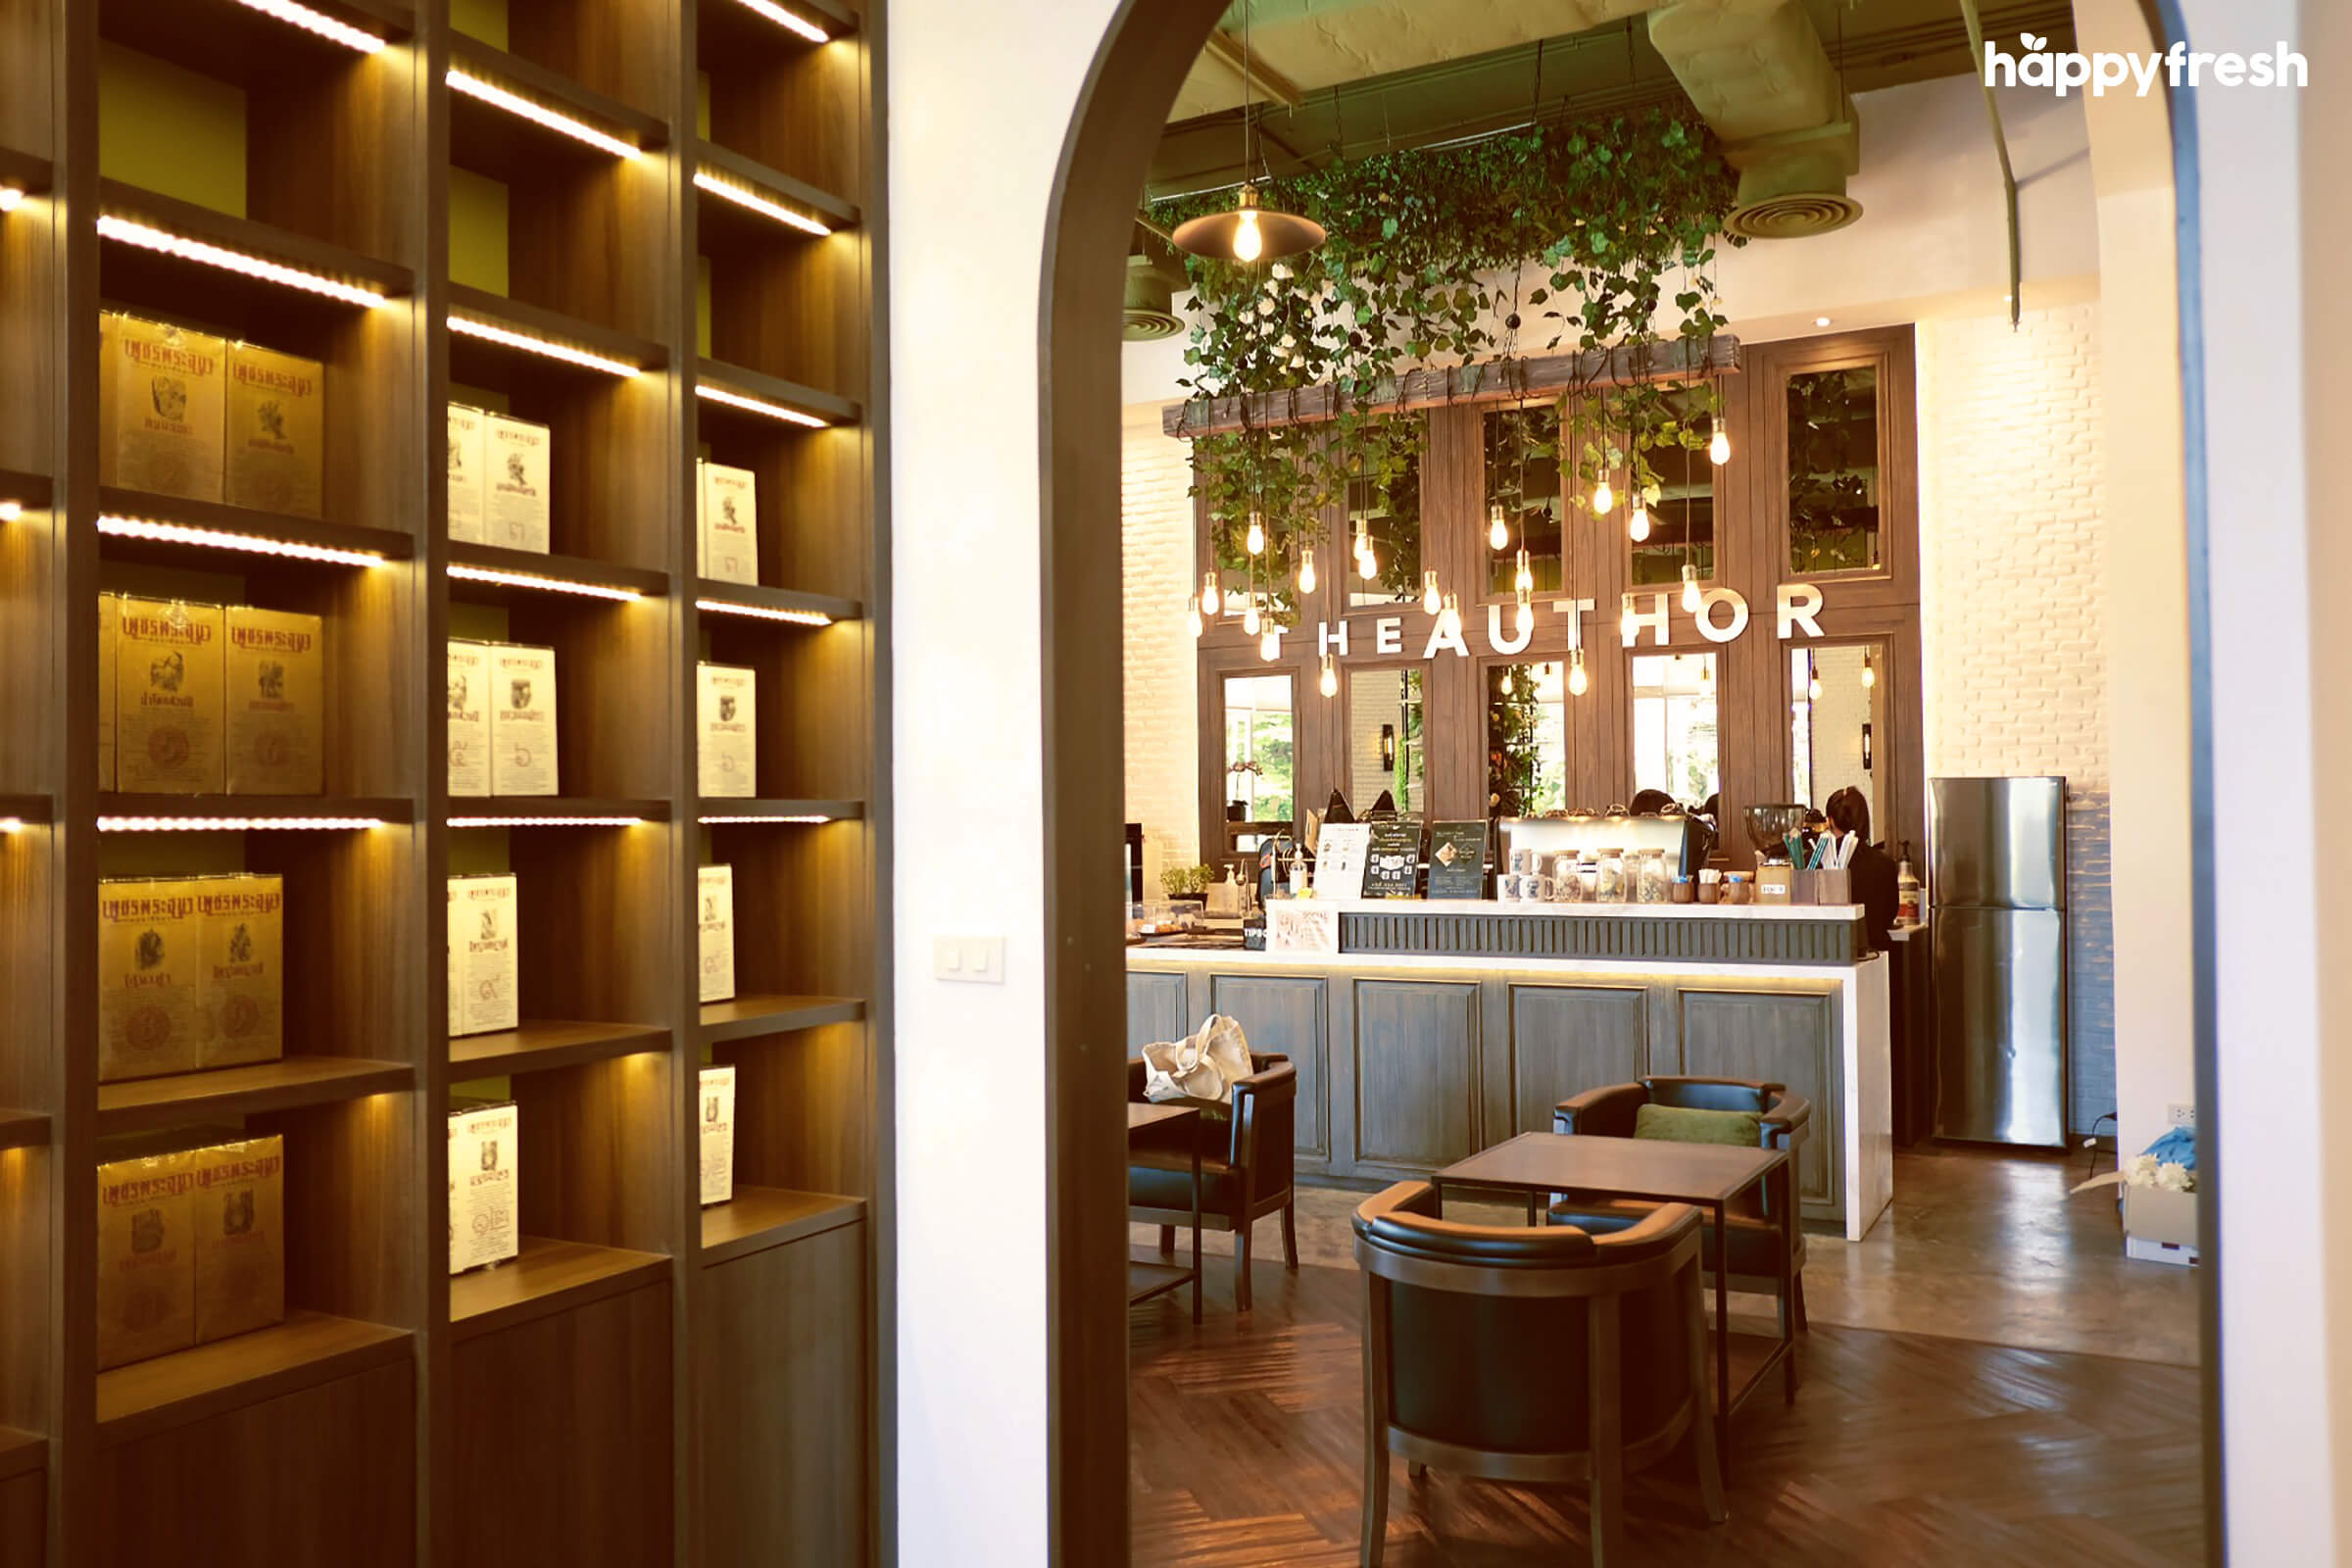 HappyFresh_Review_5_Cafes_Bookstores_In_Bangkok_The-Author